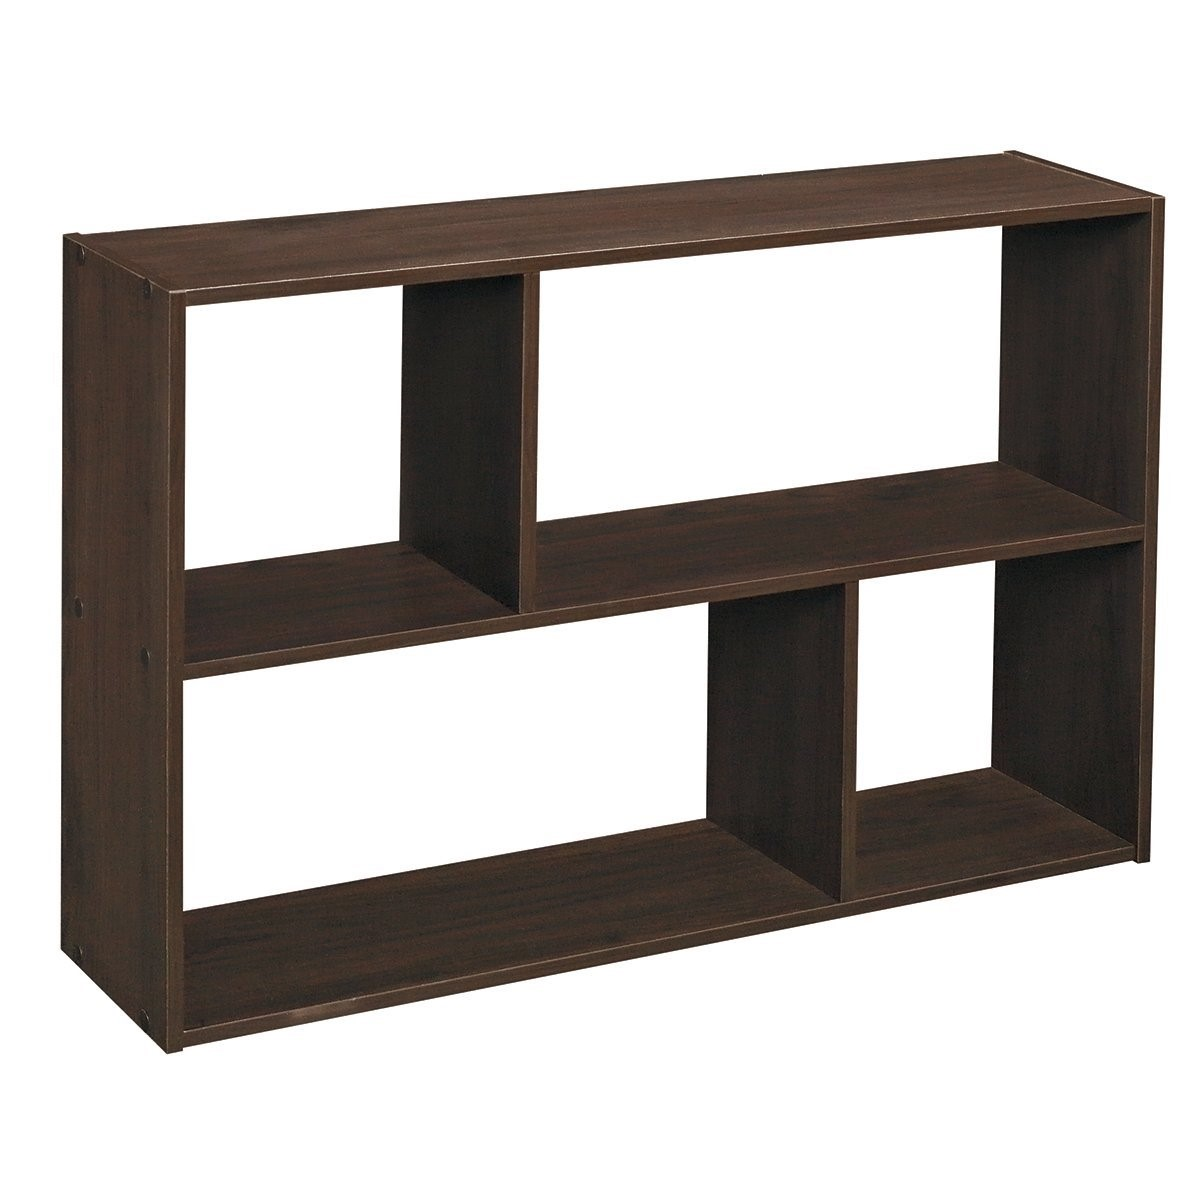 ClosetMaid Cubeicals Mini Off-Set Cube Organizer, Espresso